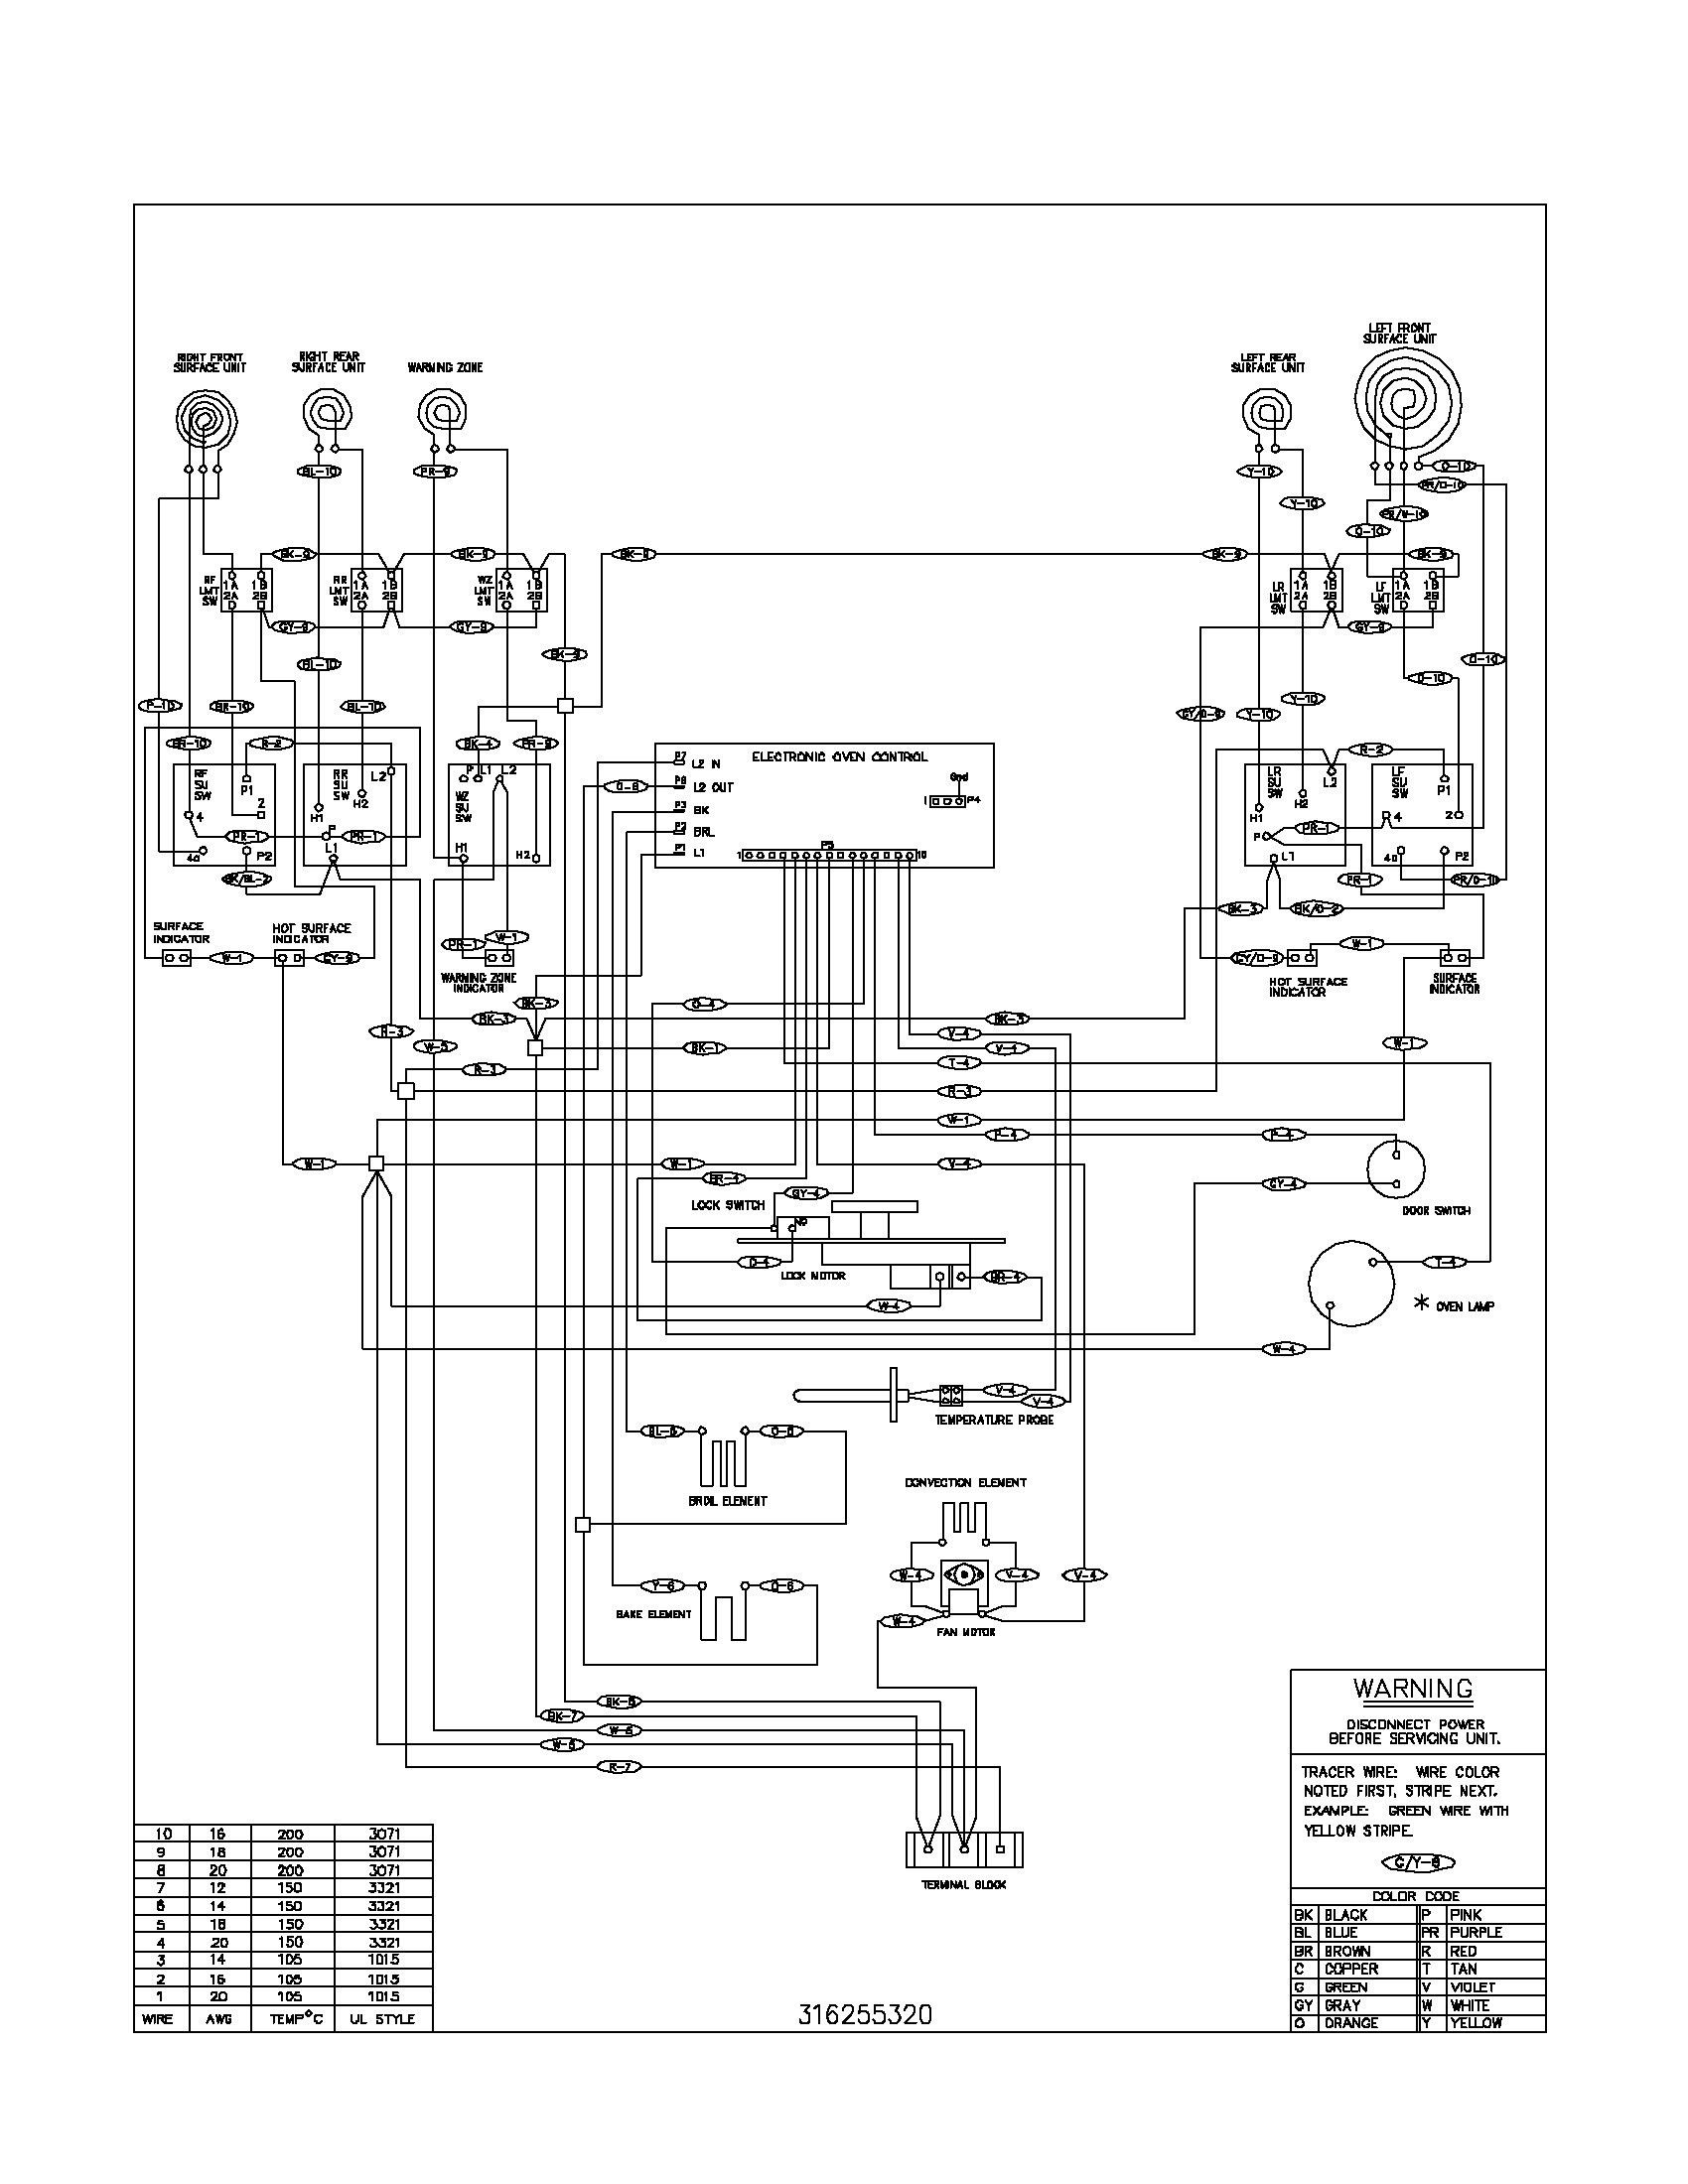 [DIAGRAM_3NM]  24 Wiring Diagram For Electric Stove - bookingritzcarlton.info | Electric  stove, Electrical diagram, Electric oven | Wire Stove Schematic Diagram |  | Pinterest